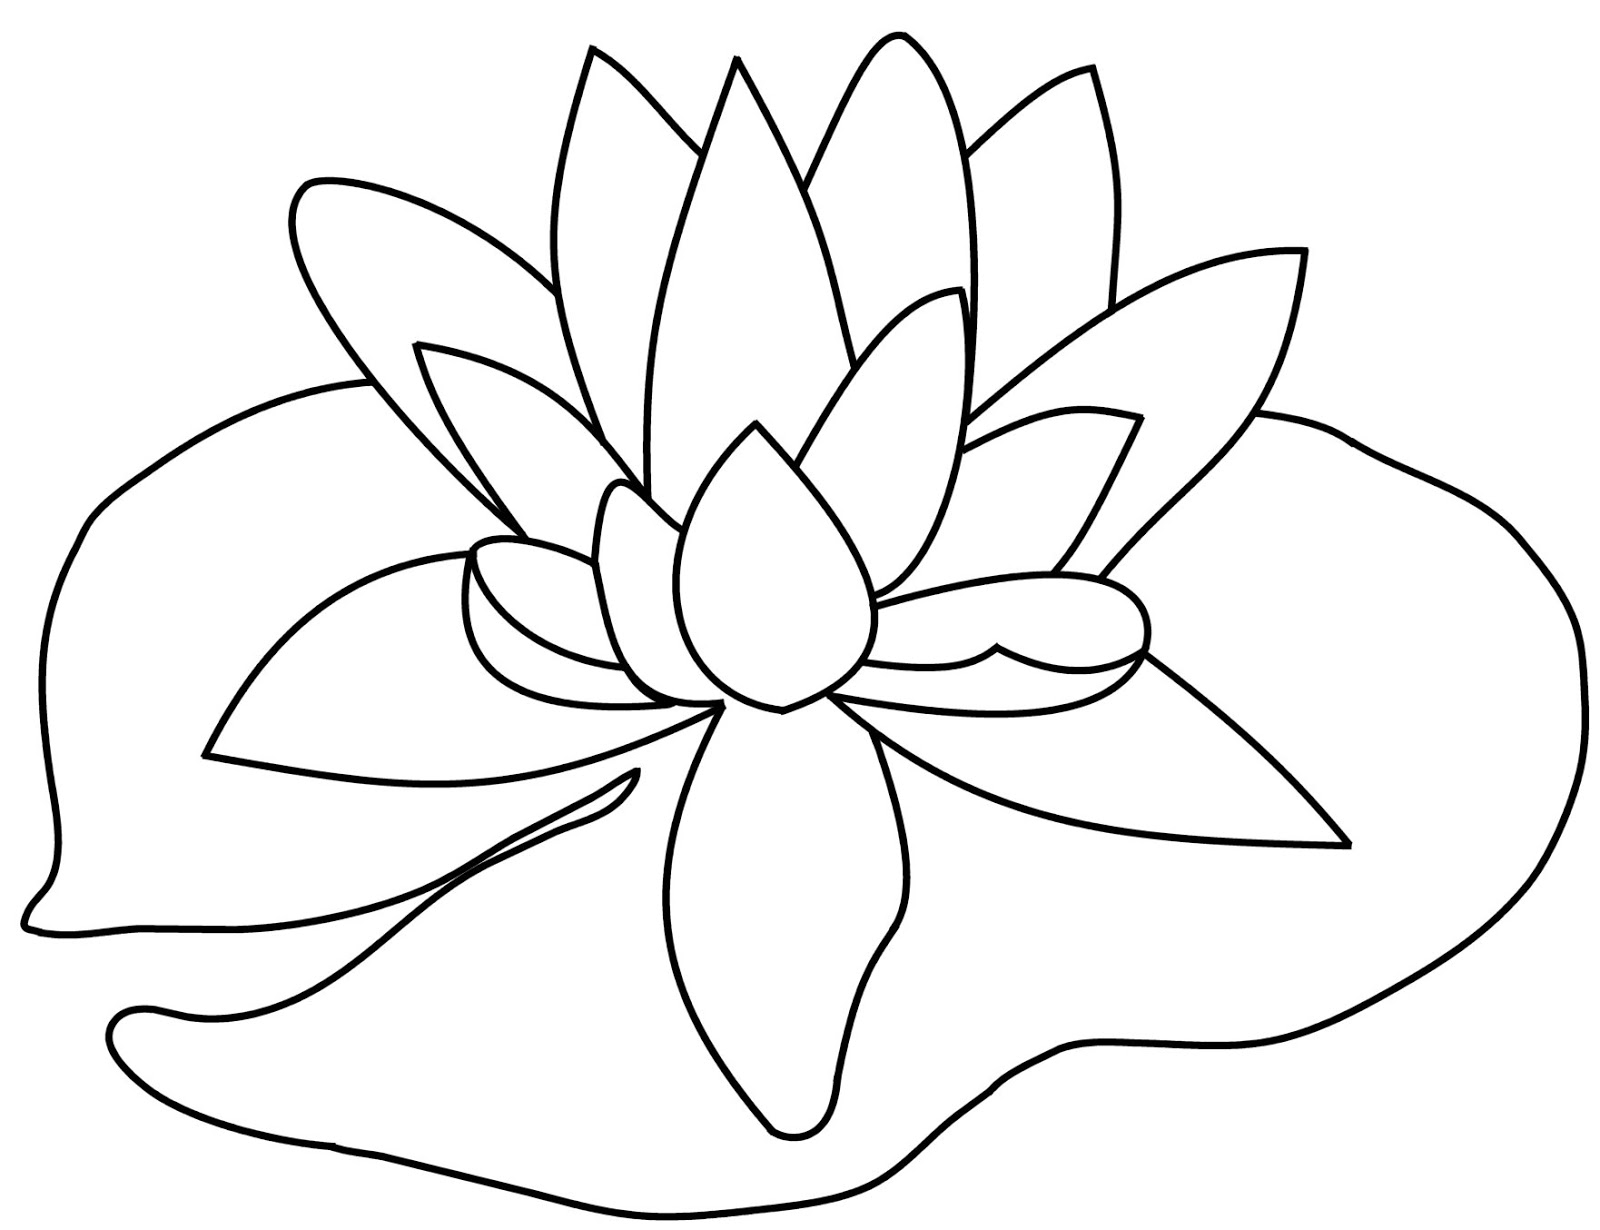 lily pad flower coloring pages pond coloring pages lily pad flower free printable pad pages lily coloring flower